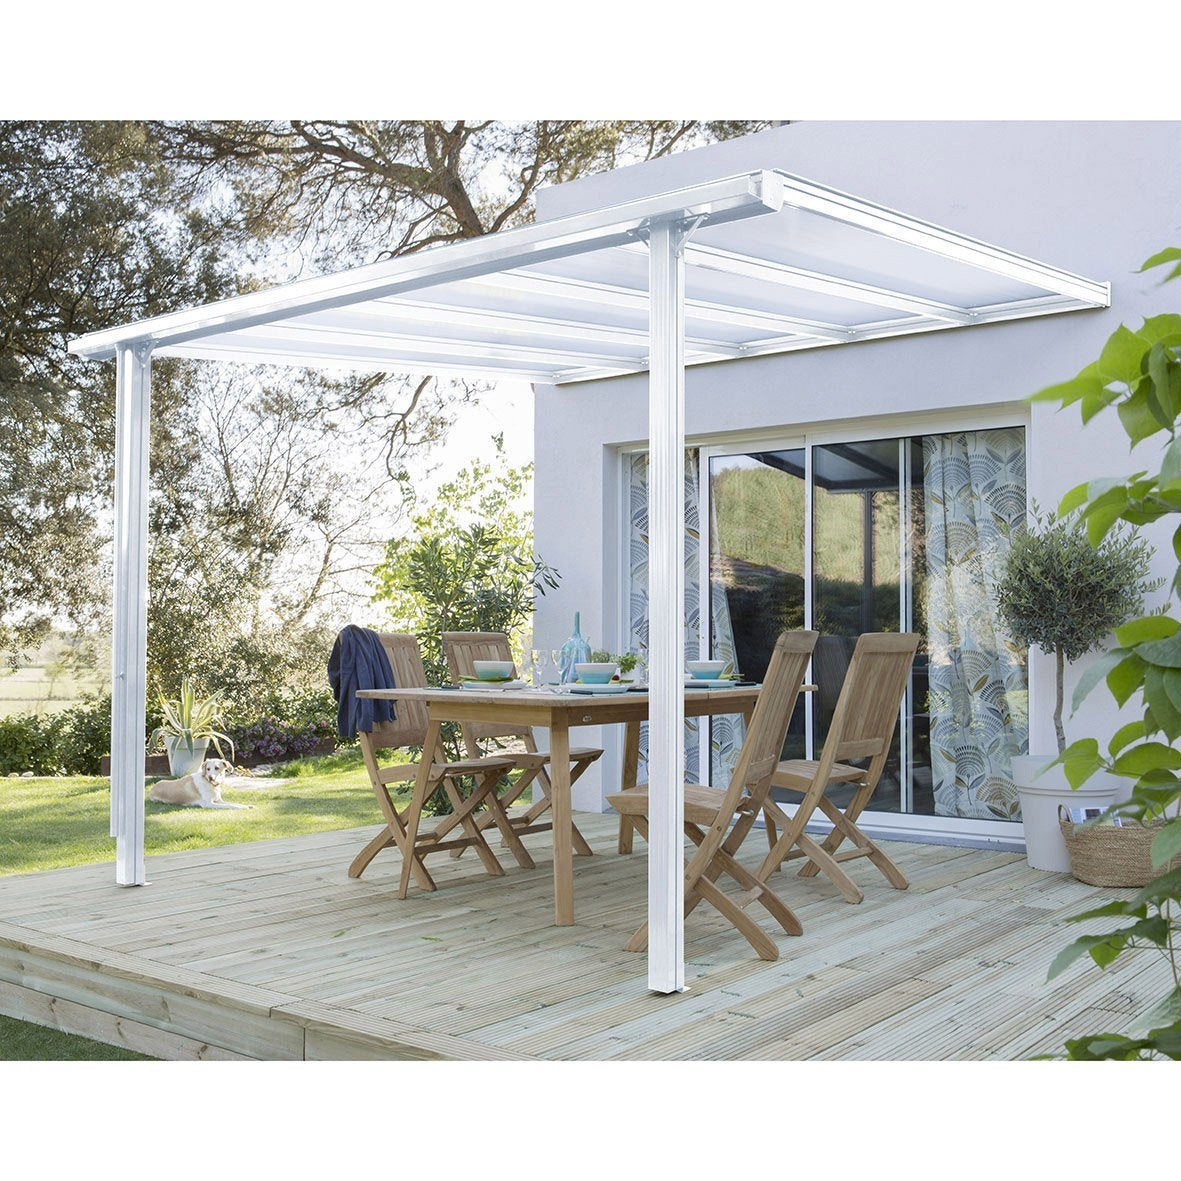 Couverture de terrasse adoss e tradition aluminium blanche m leroy merlin for Couverture pour terrasse